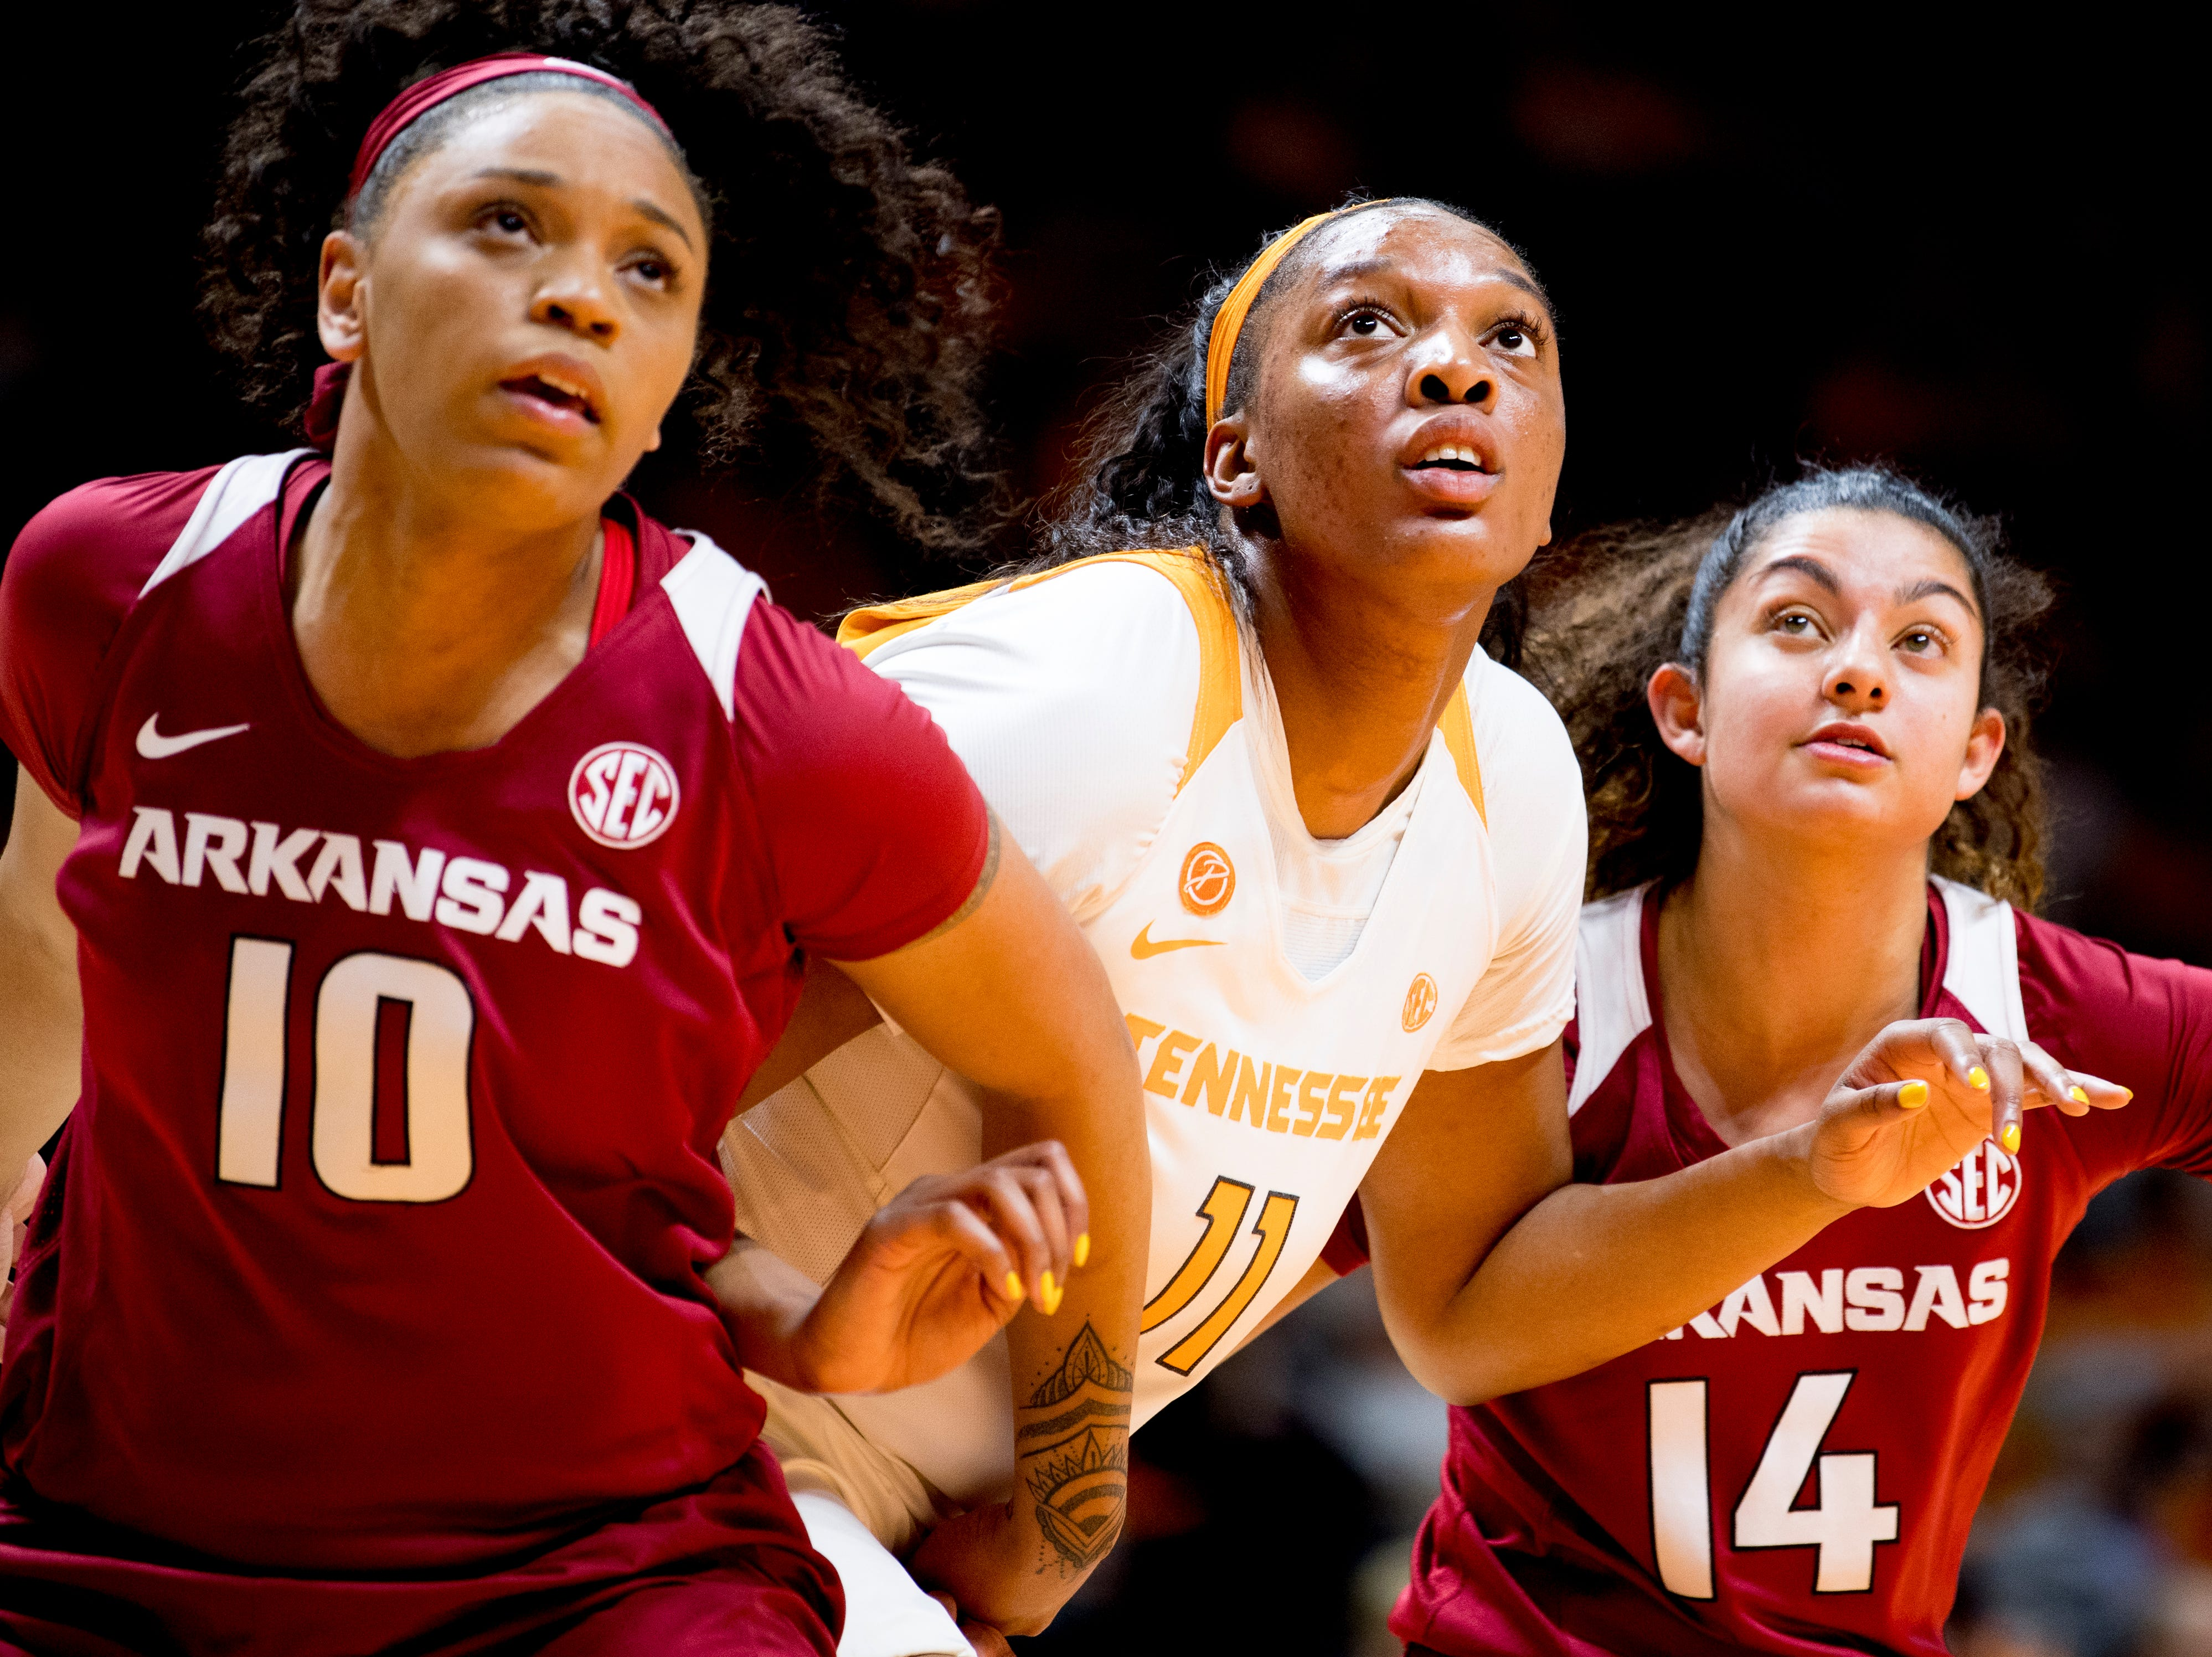 Tennessee center Kasiyahna Kushkituah (11) eyes the rebound with Arkansas forward/center Kiara Williams (10) and Arkansas point guard Jailyn Mason (14) during a game between Tennessee and Arkansas at Thompson-Boling Arena in , Tennessee on Monday, January 21, 2019.